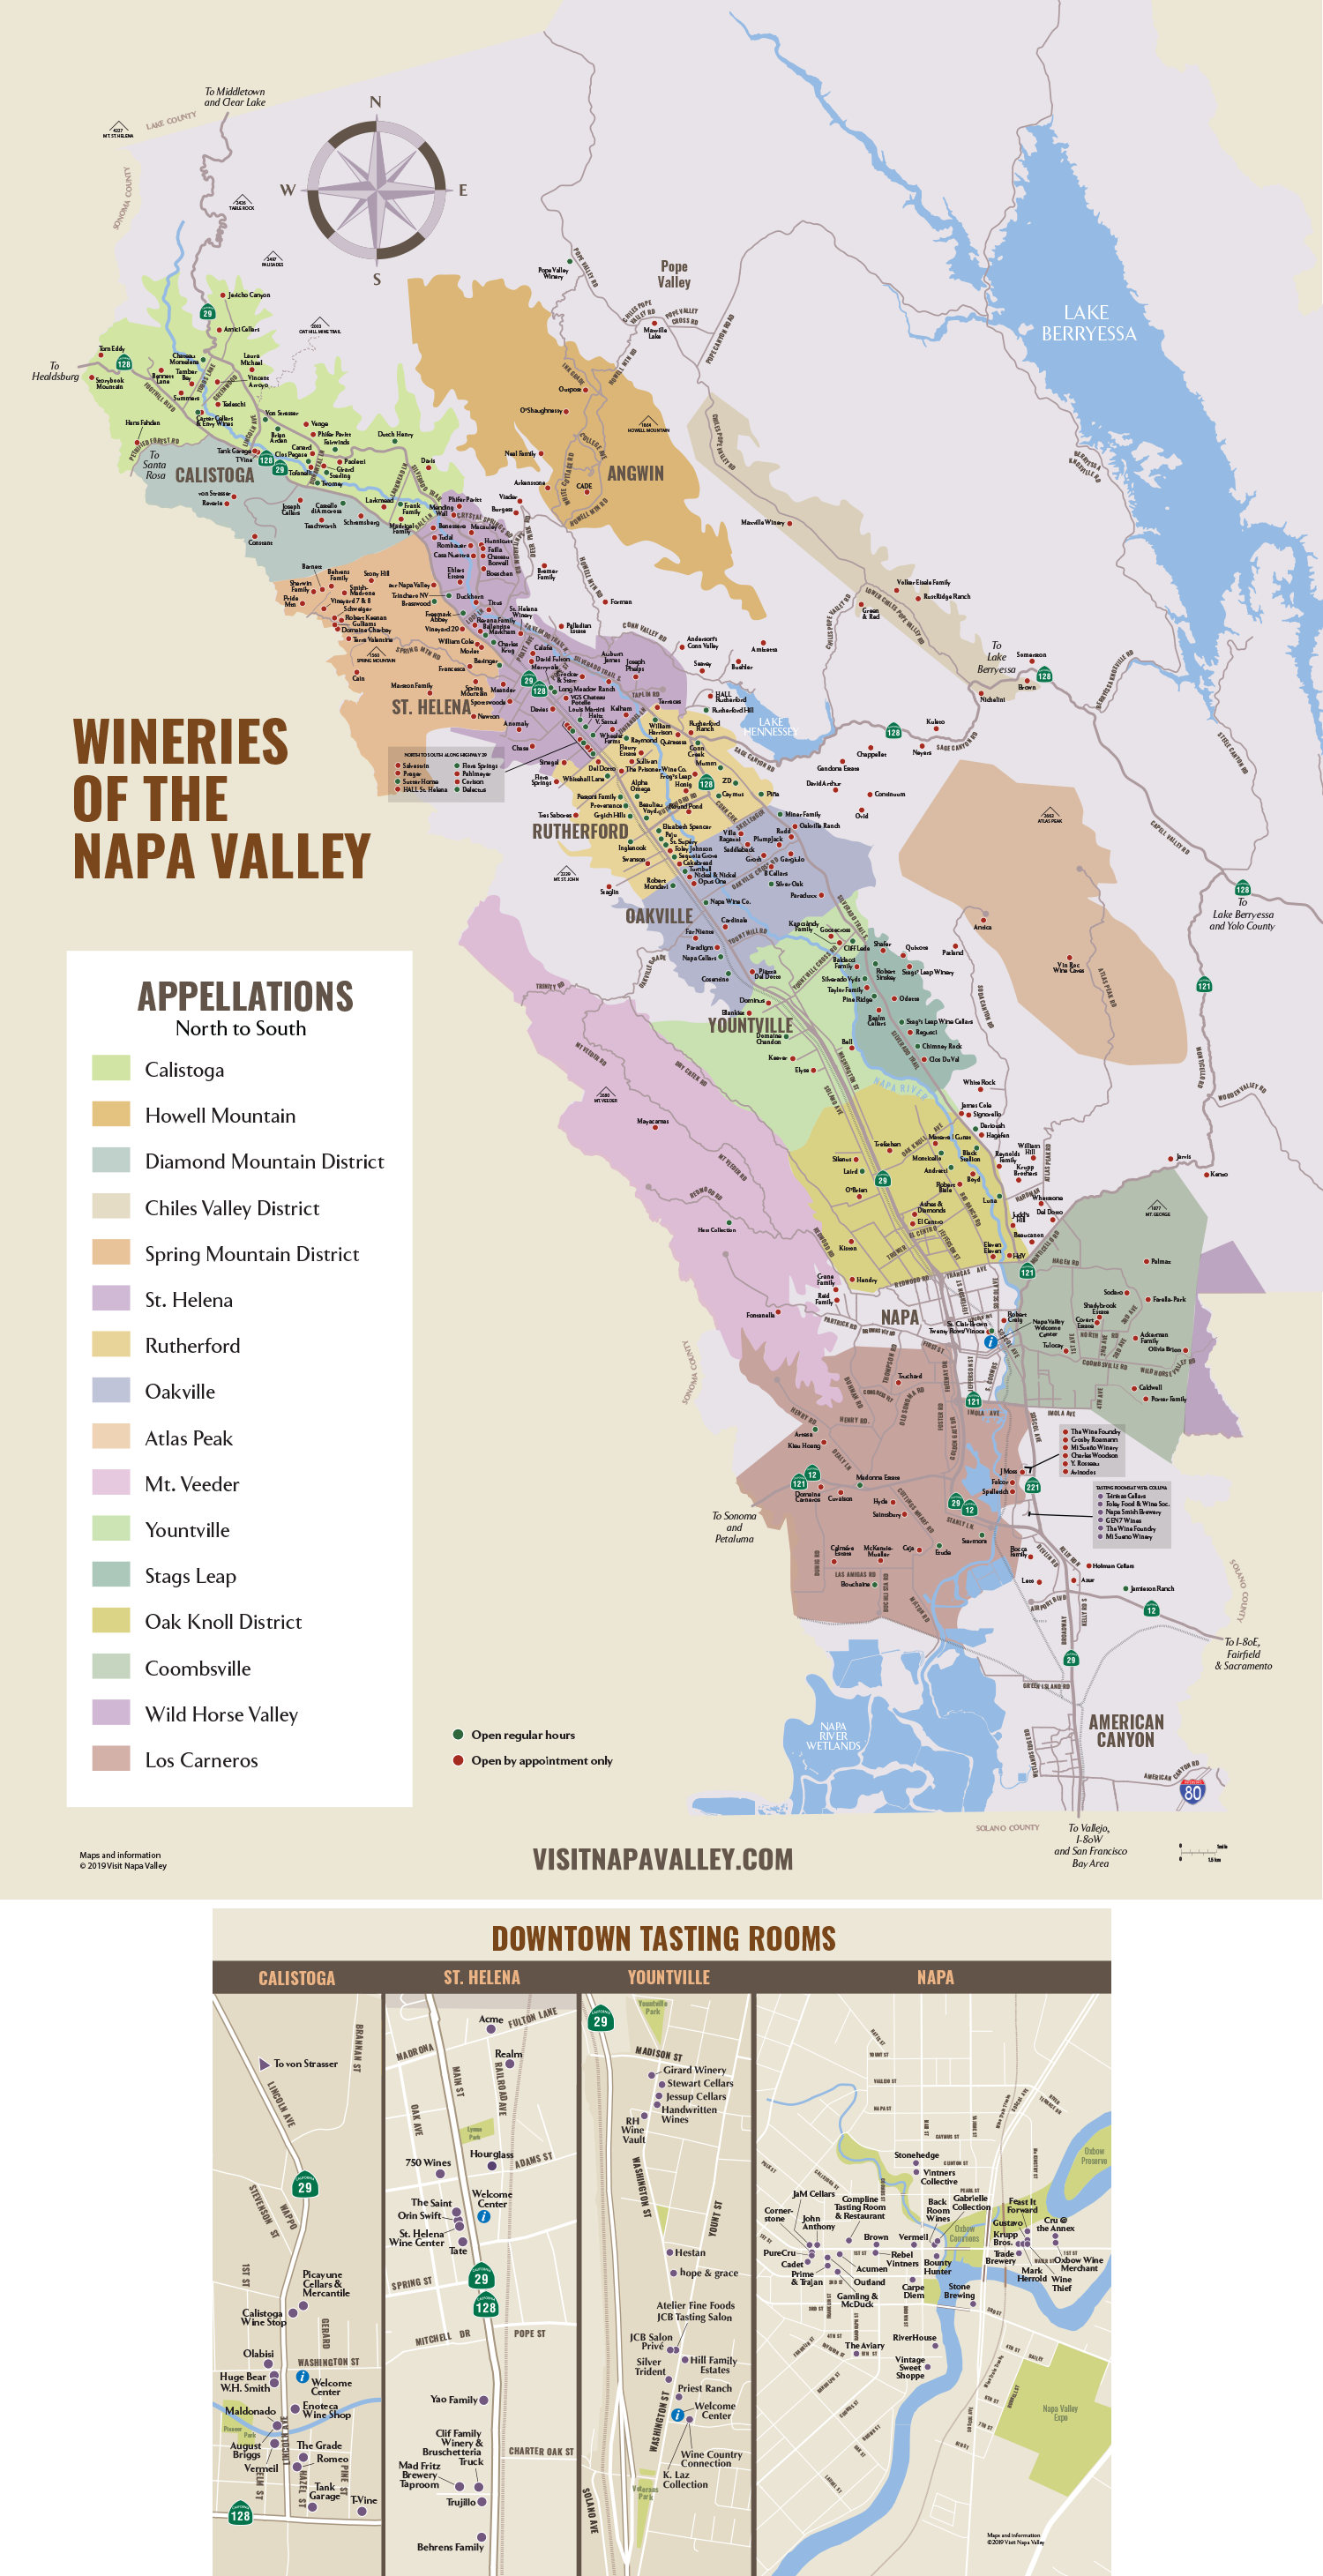 Napa Valley Winery & Tasting Room Map